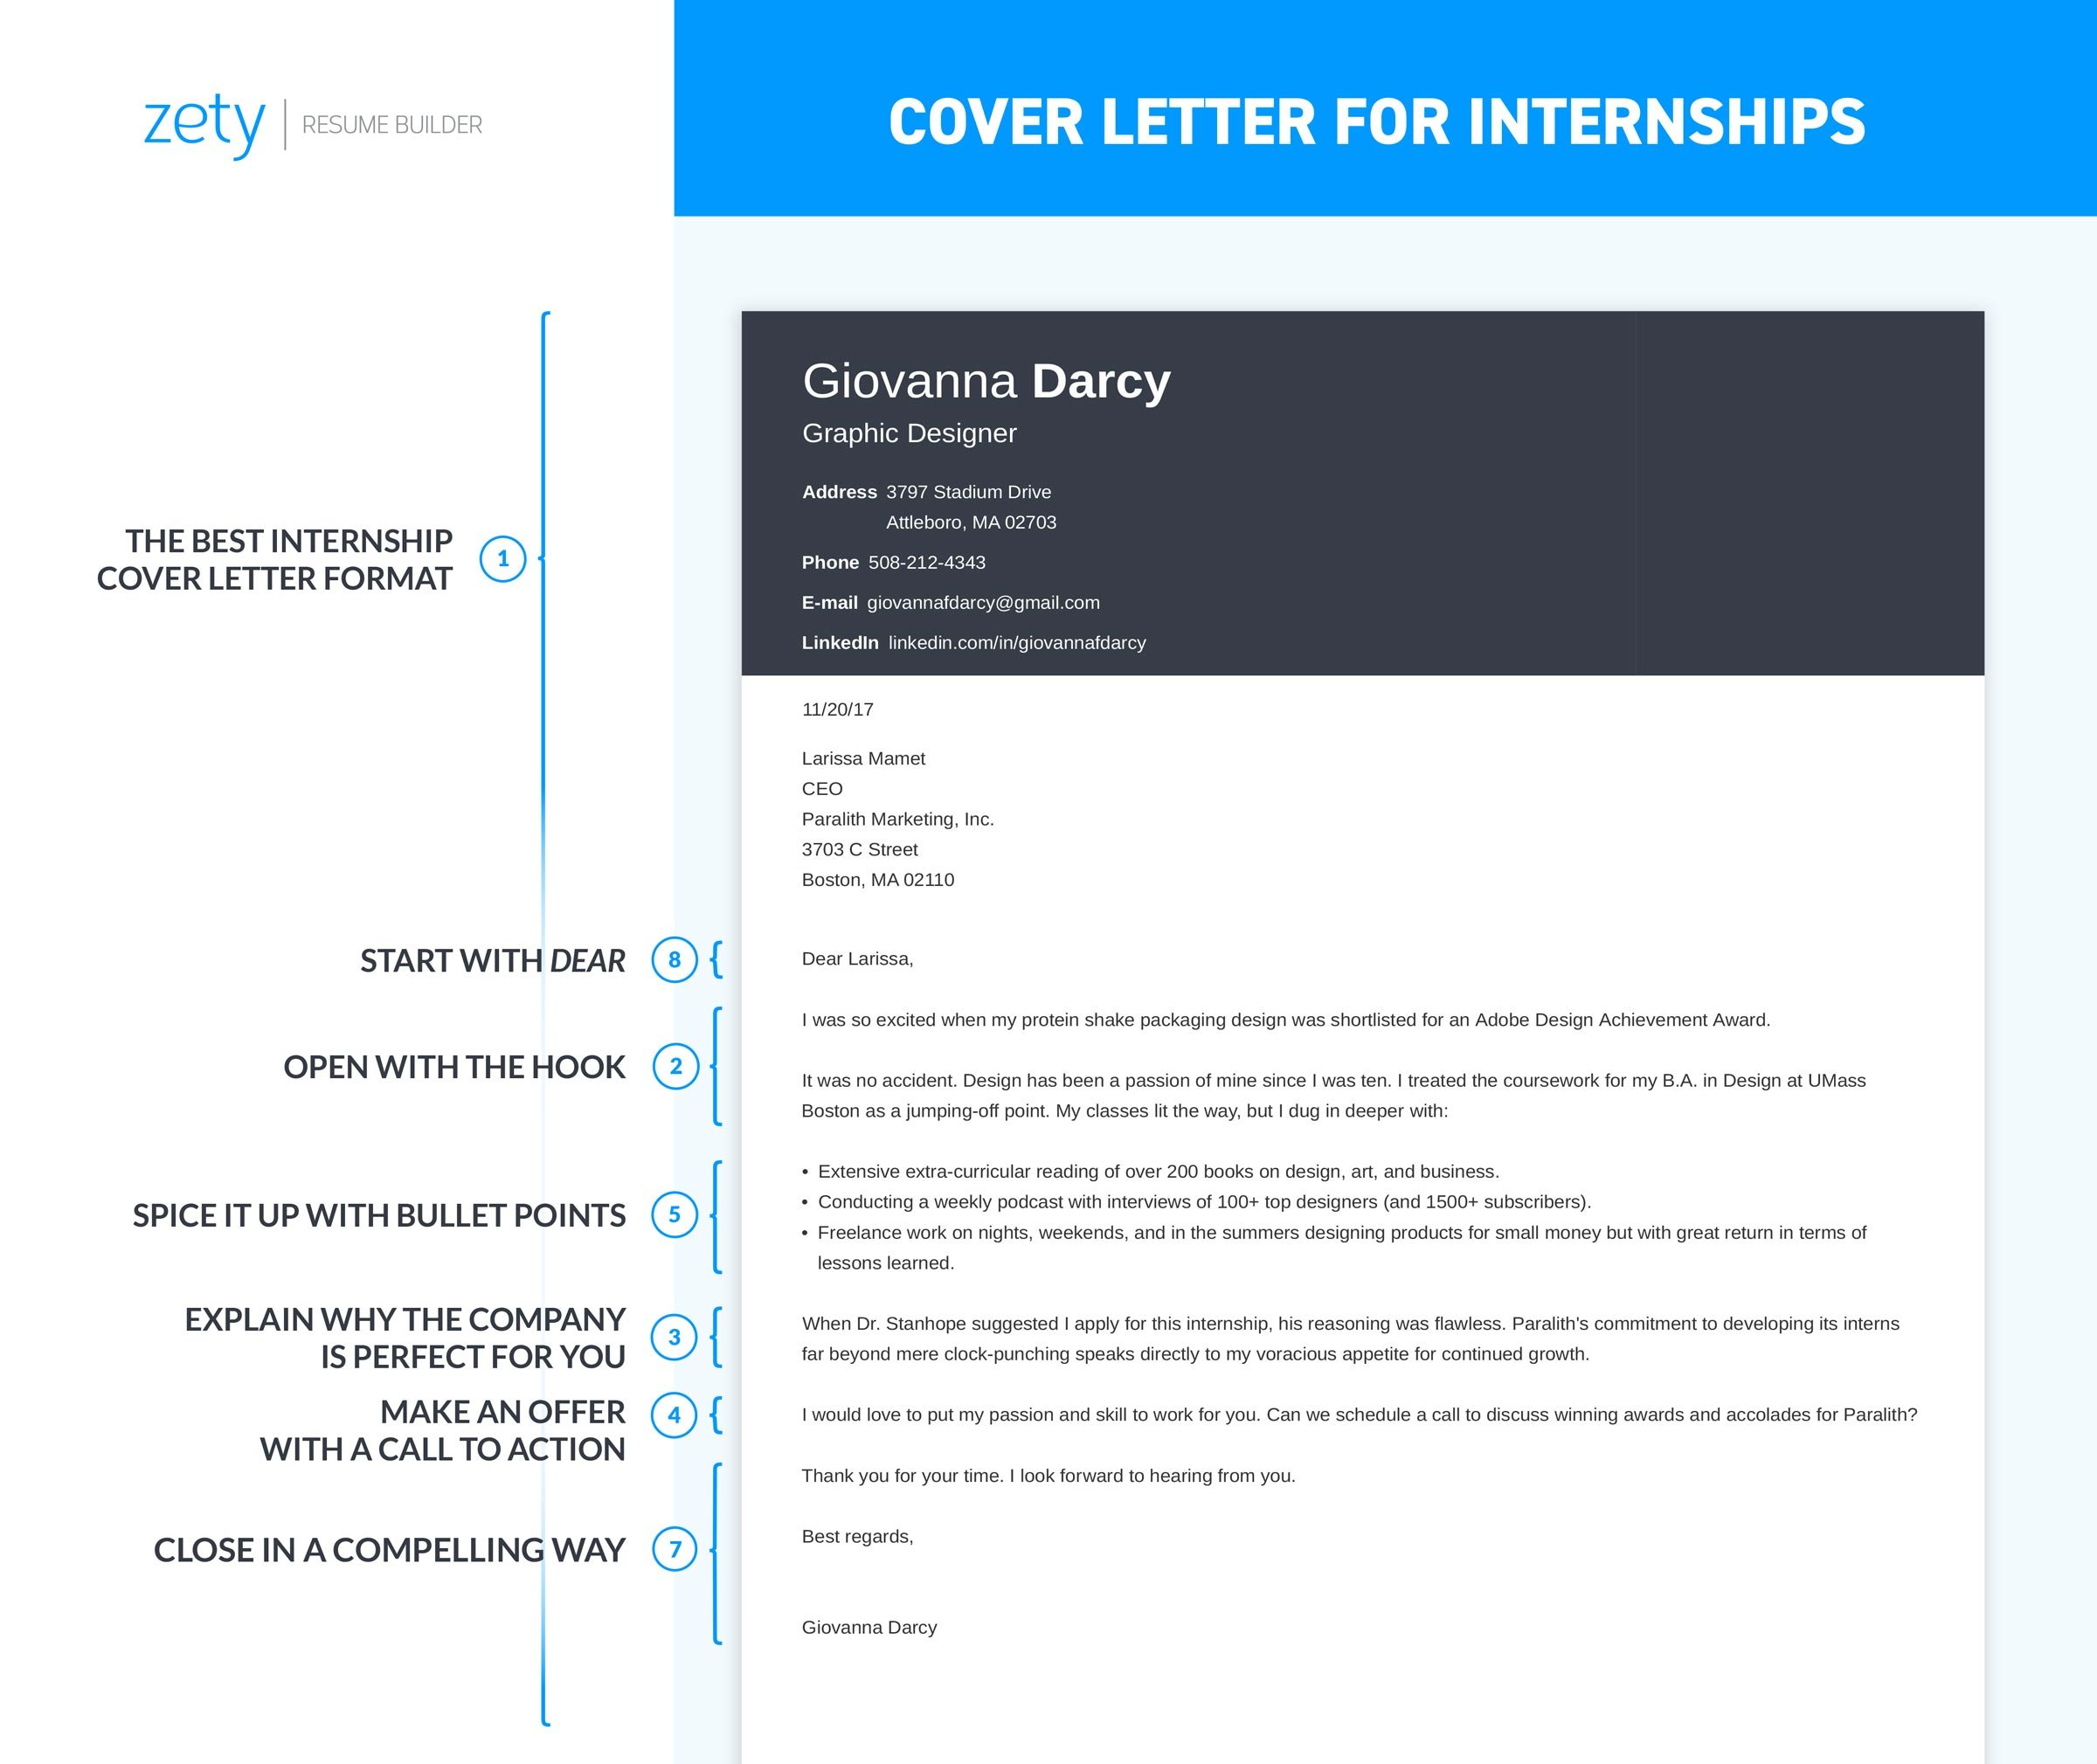 How to write a cover letter for an internship 20 examples for Writing a good cover letter for an internship